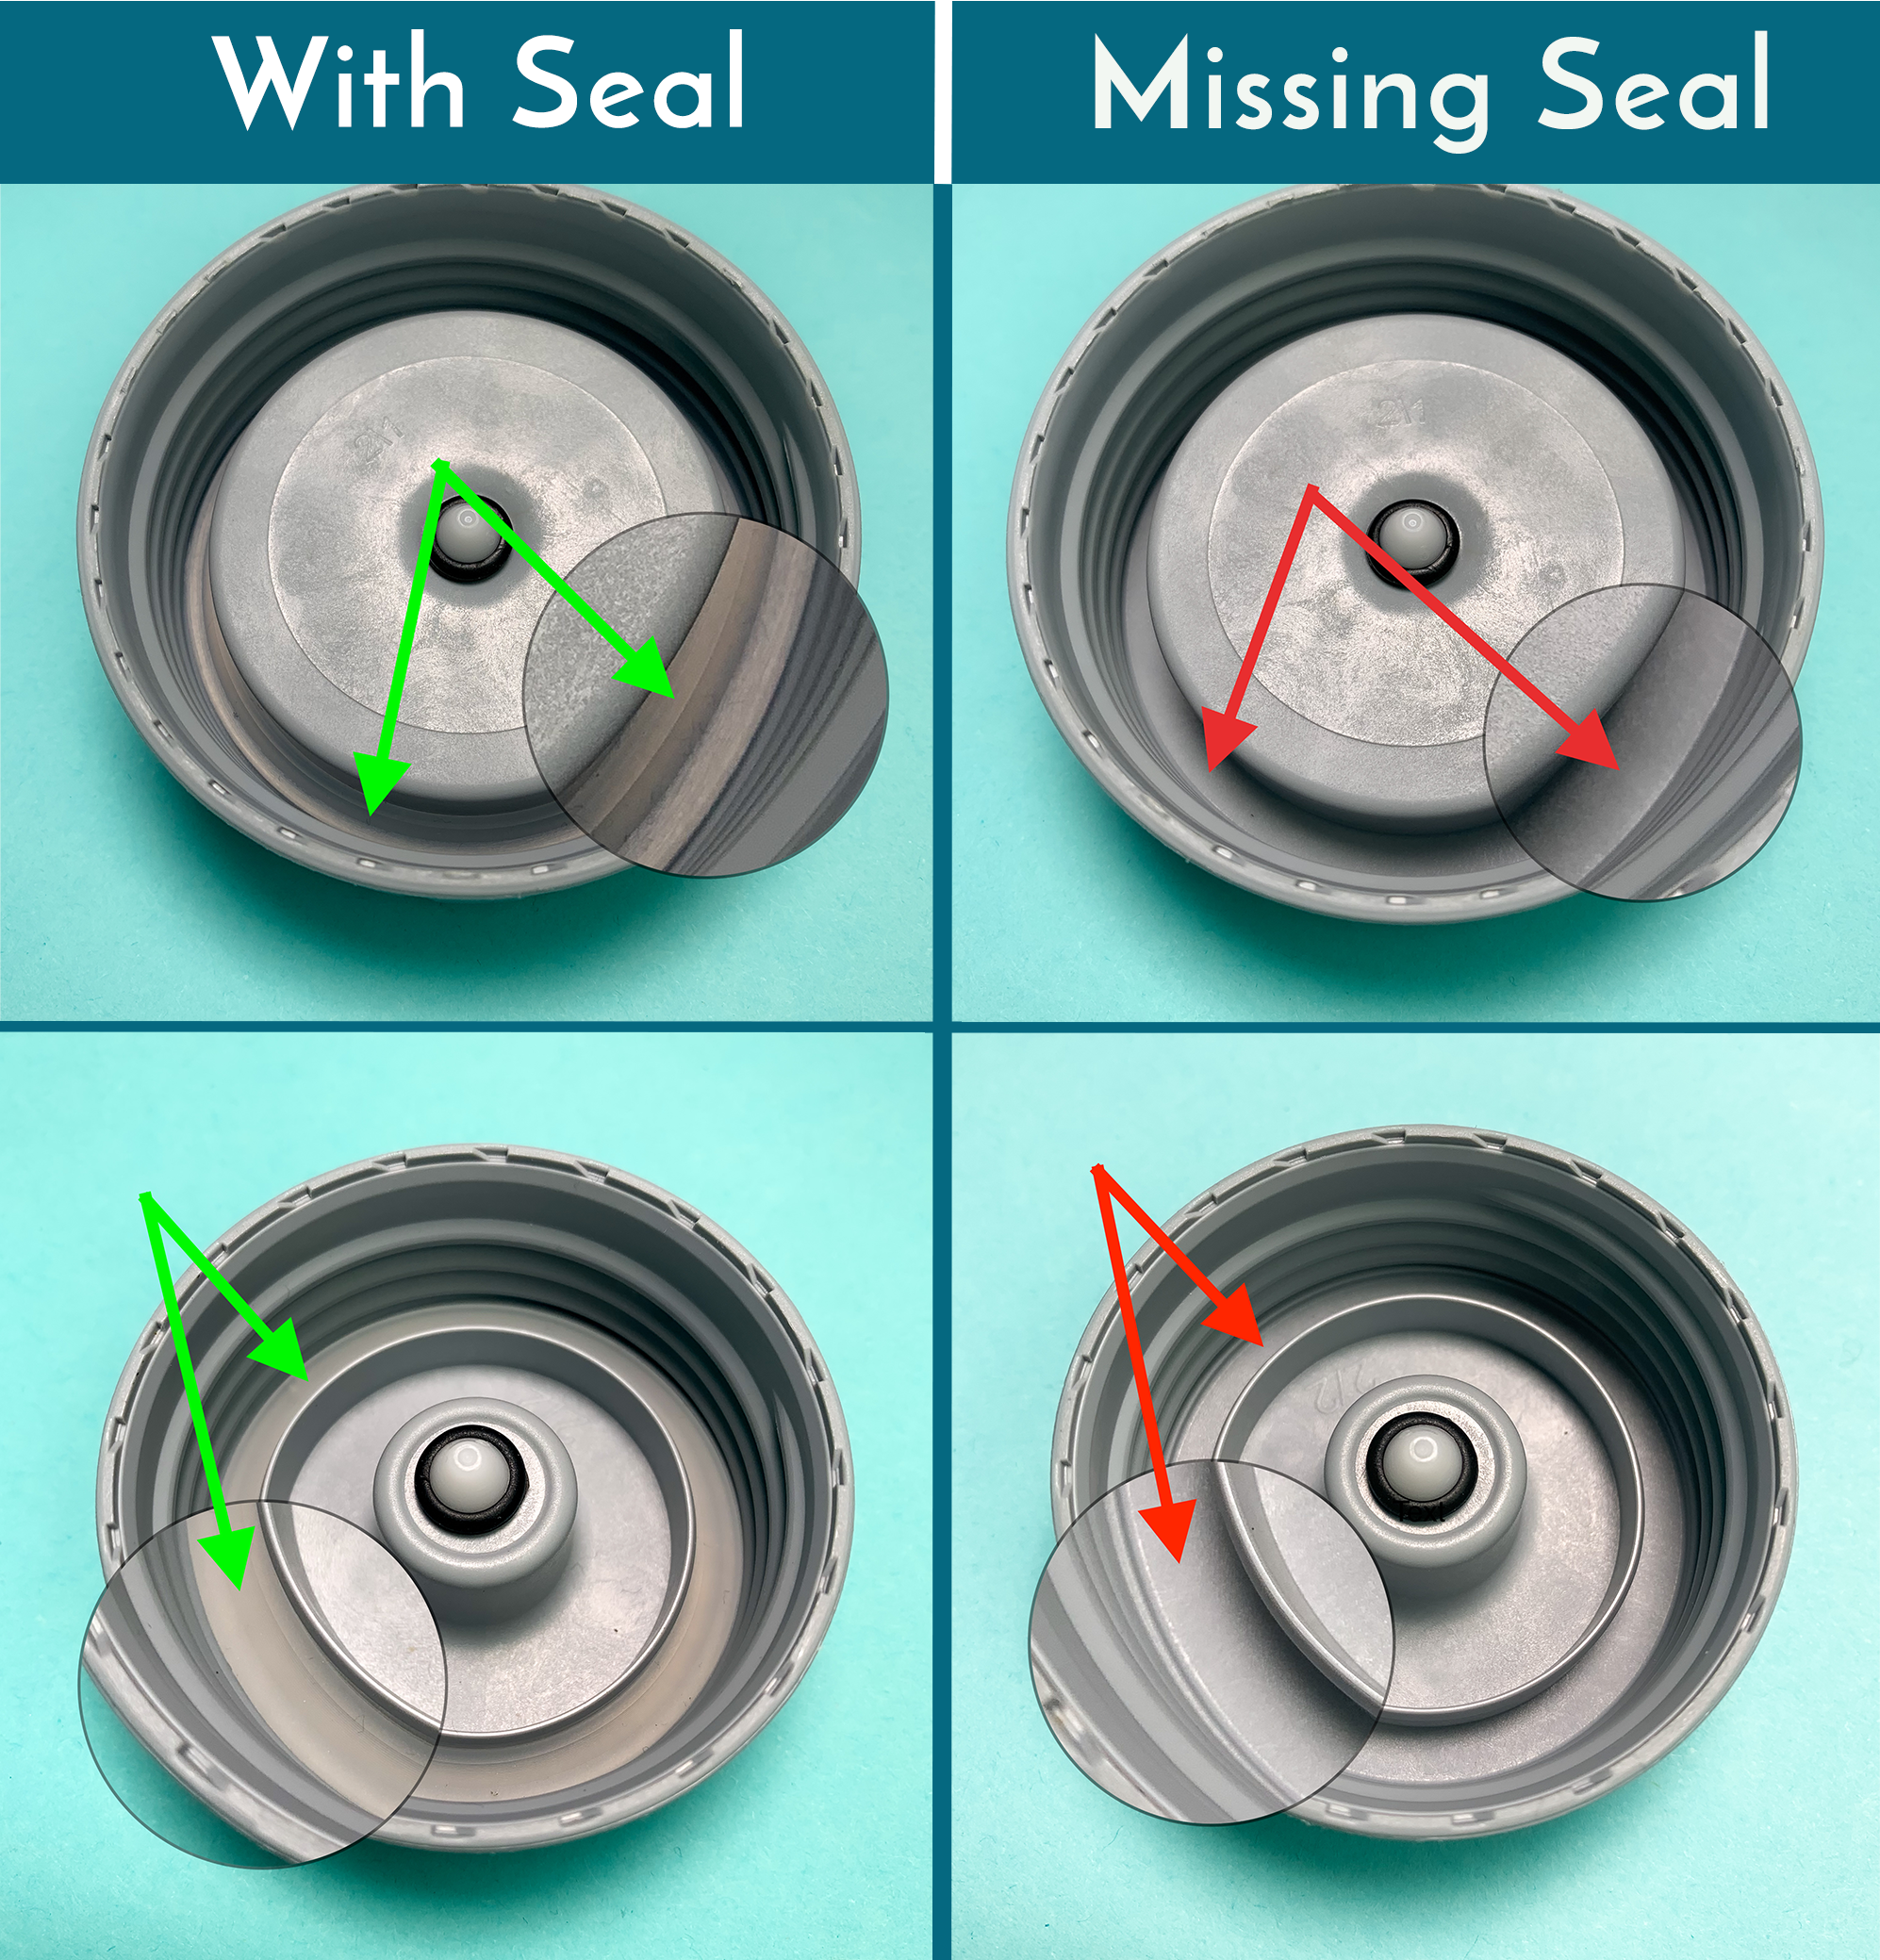 Missing_Bottom_Bottle_Cap_Seals.png